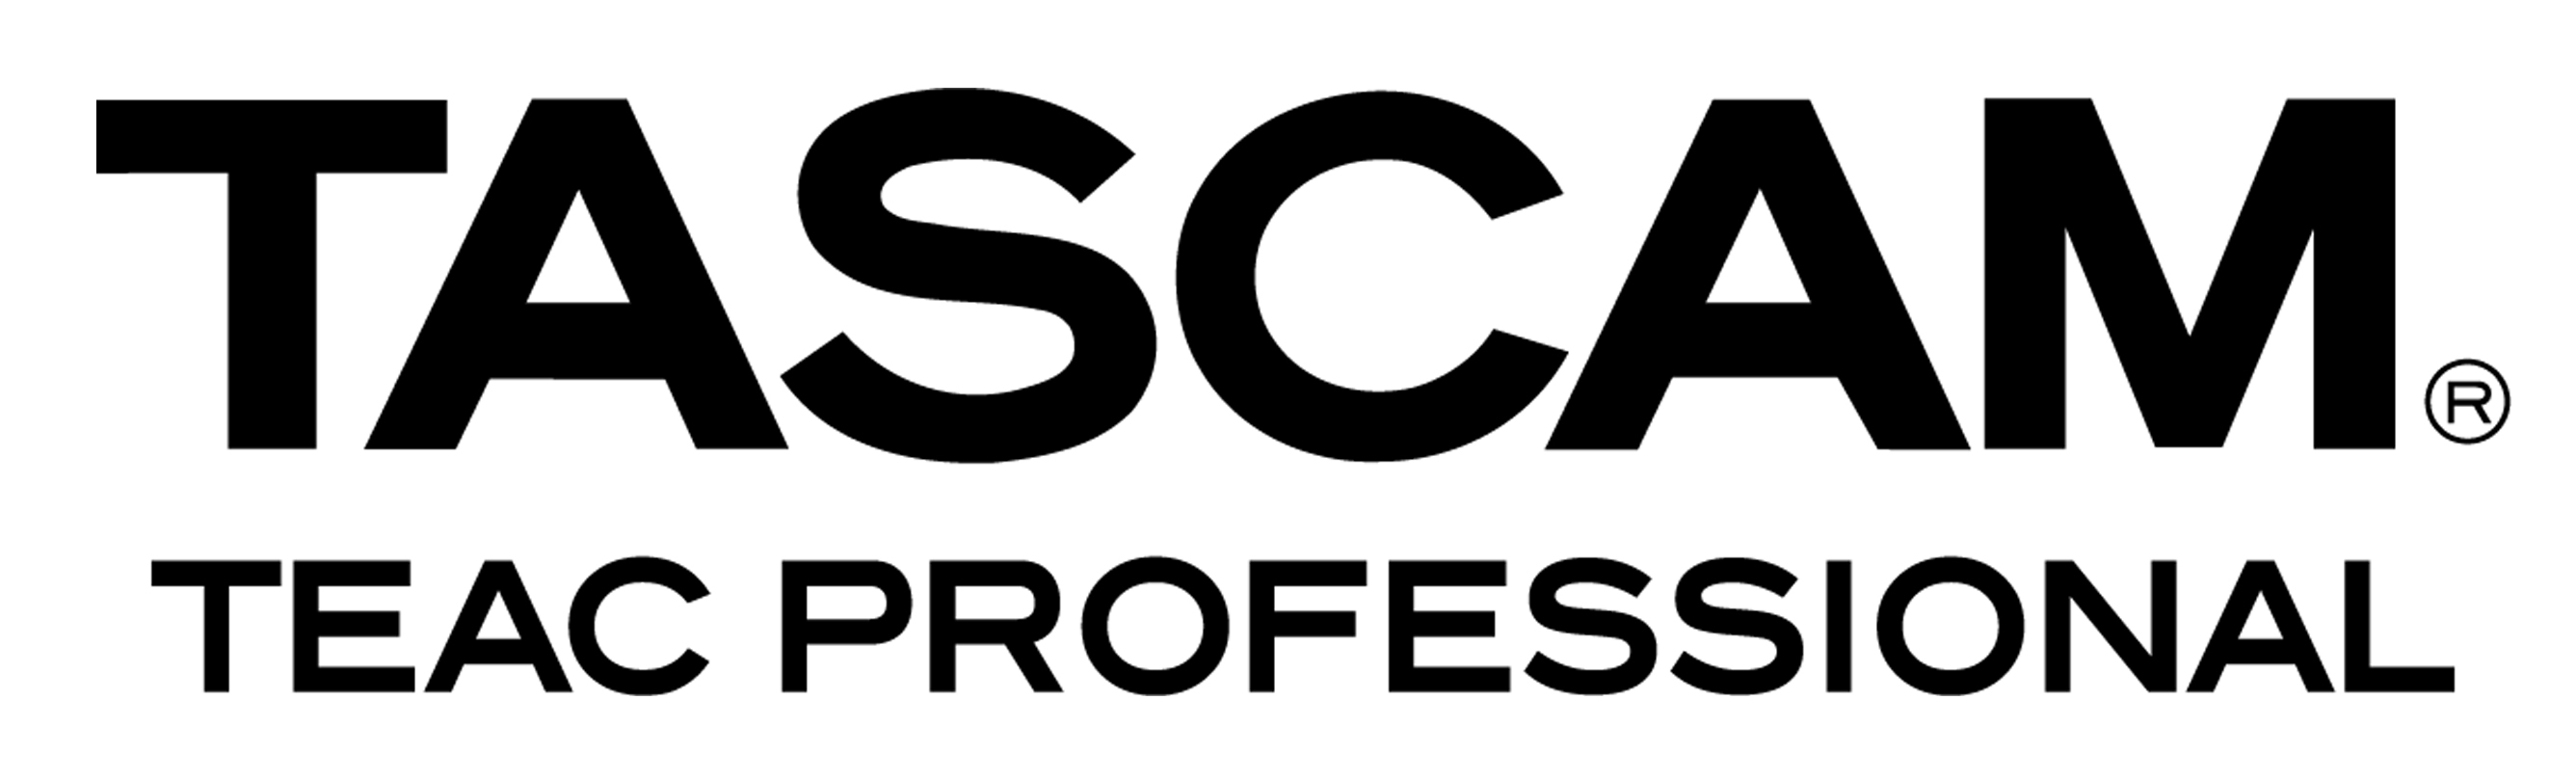 tascam_logo.jpg